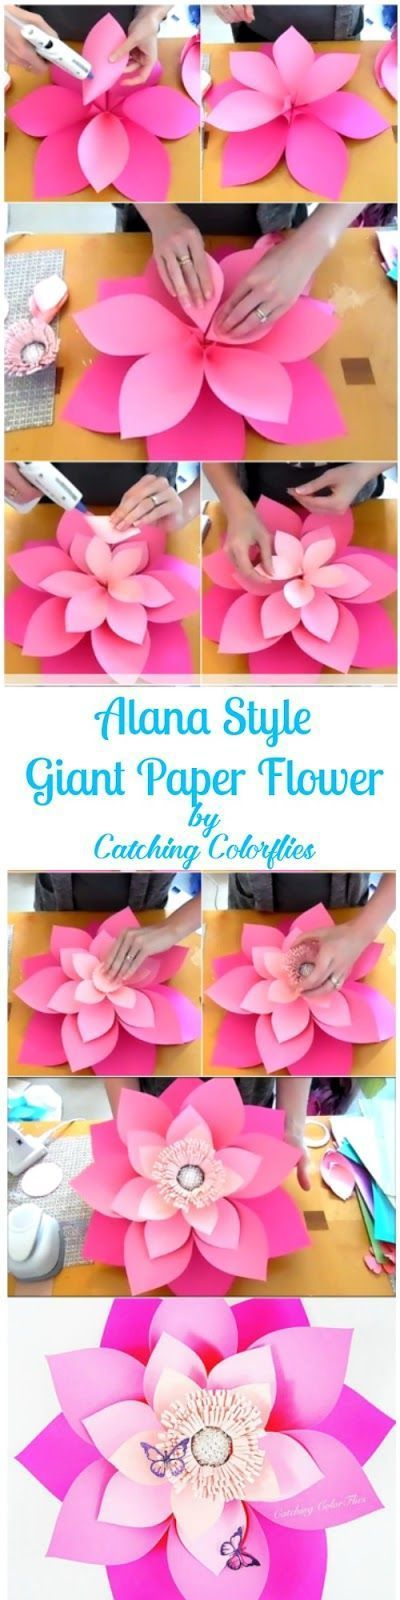 Diy alana layered paper flower flower templates diy paper flower diy alana layered paper flower flower templates diy paper flower tutorials giant paper flower mightylinksfo